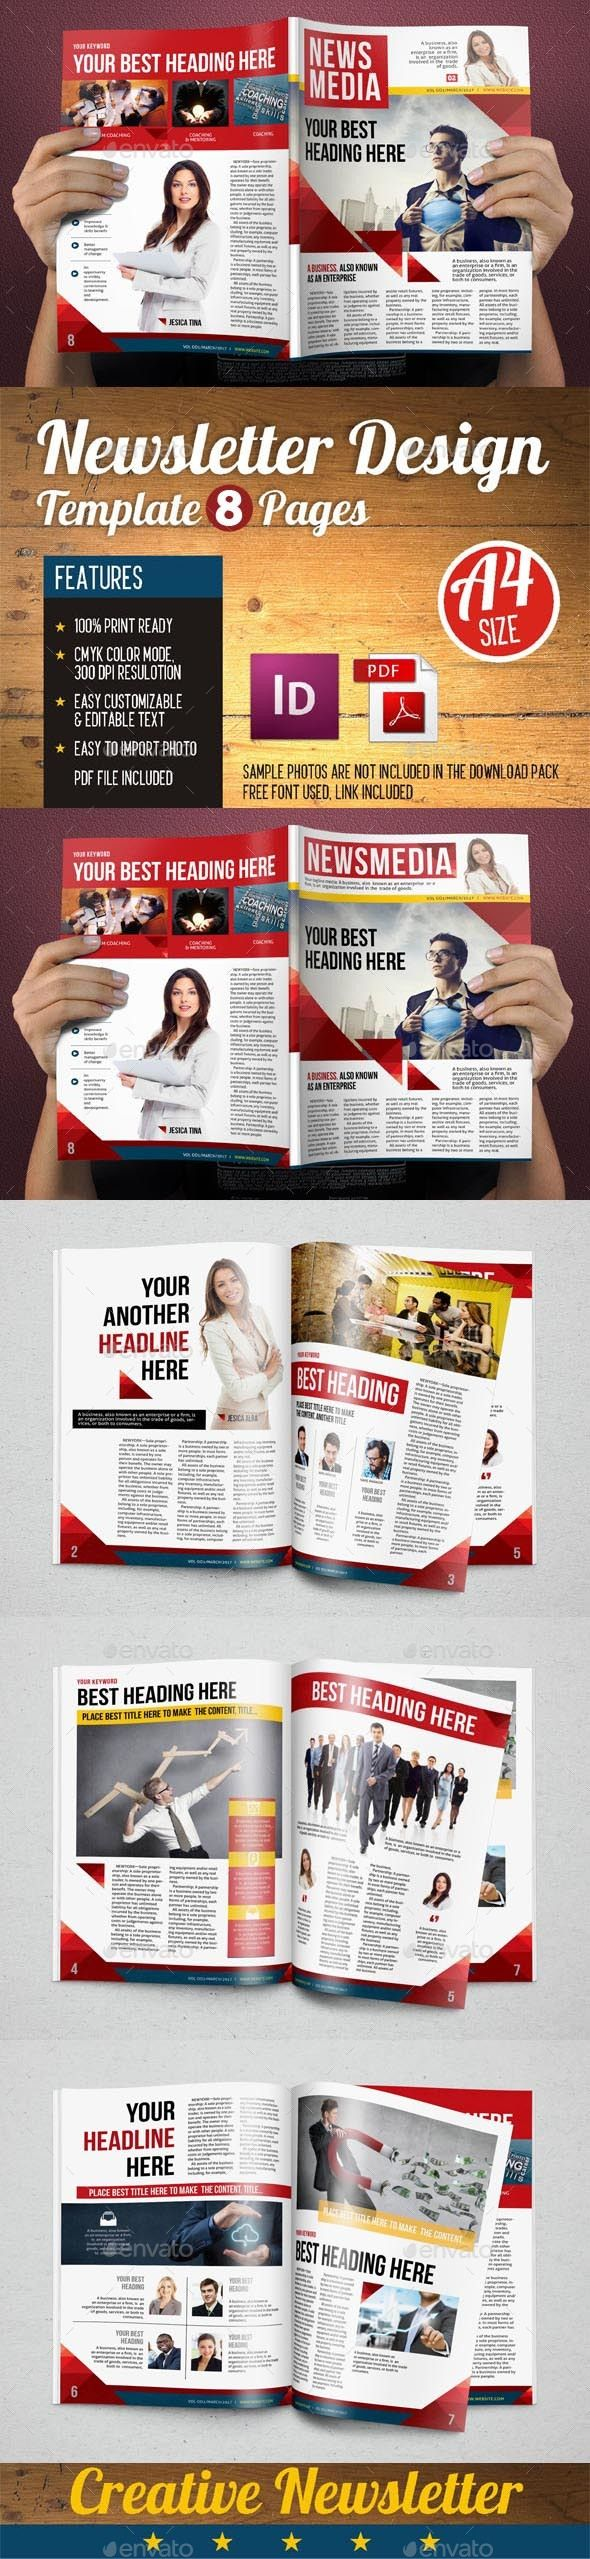 Newsletter Design Template Vol 5 Newsletter Templates Newsletter